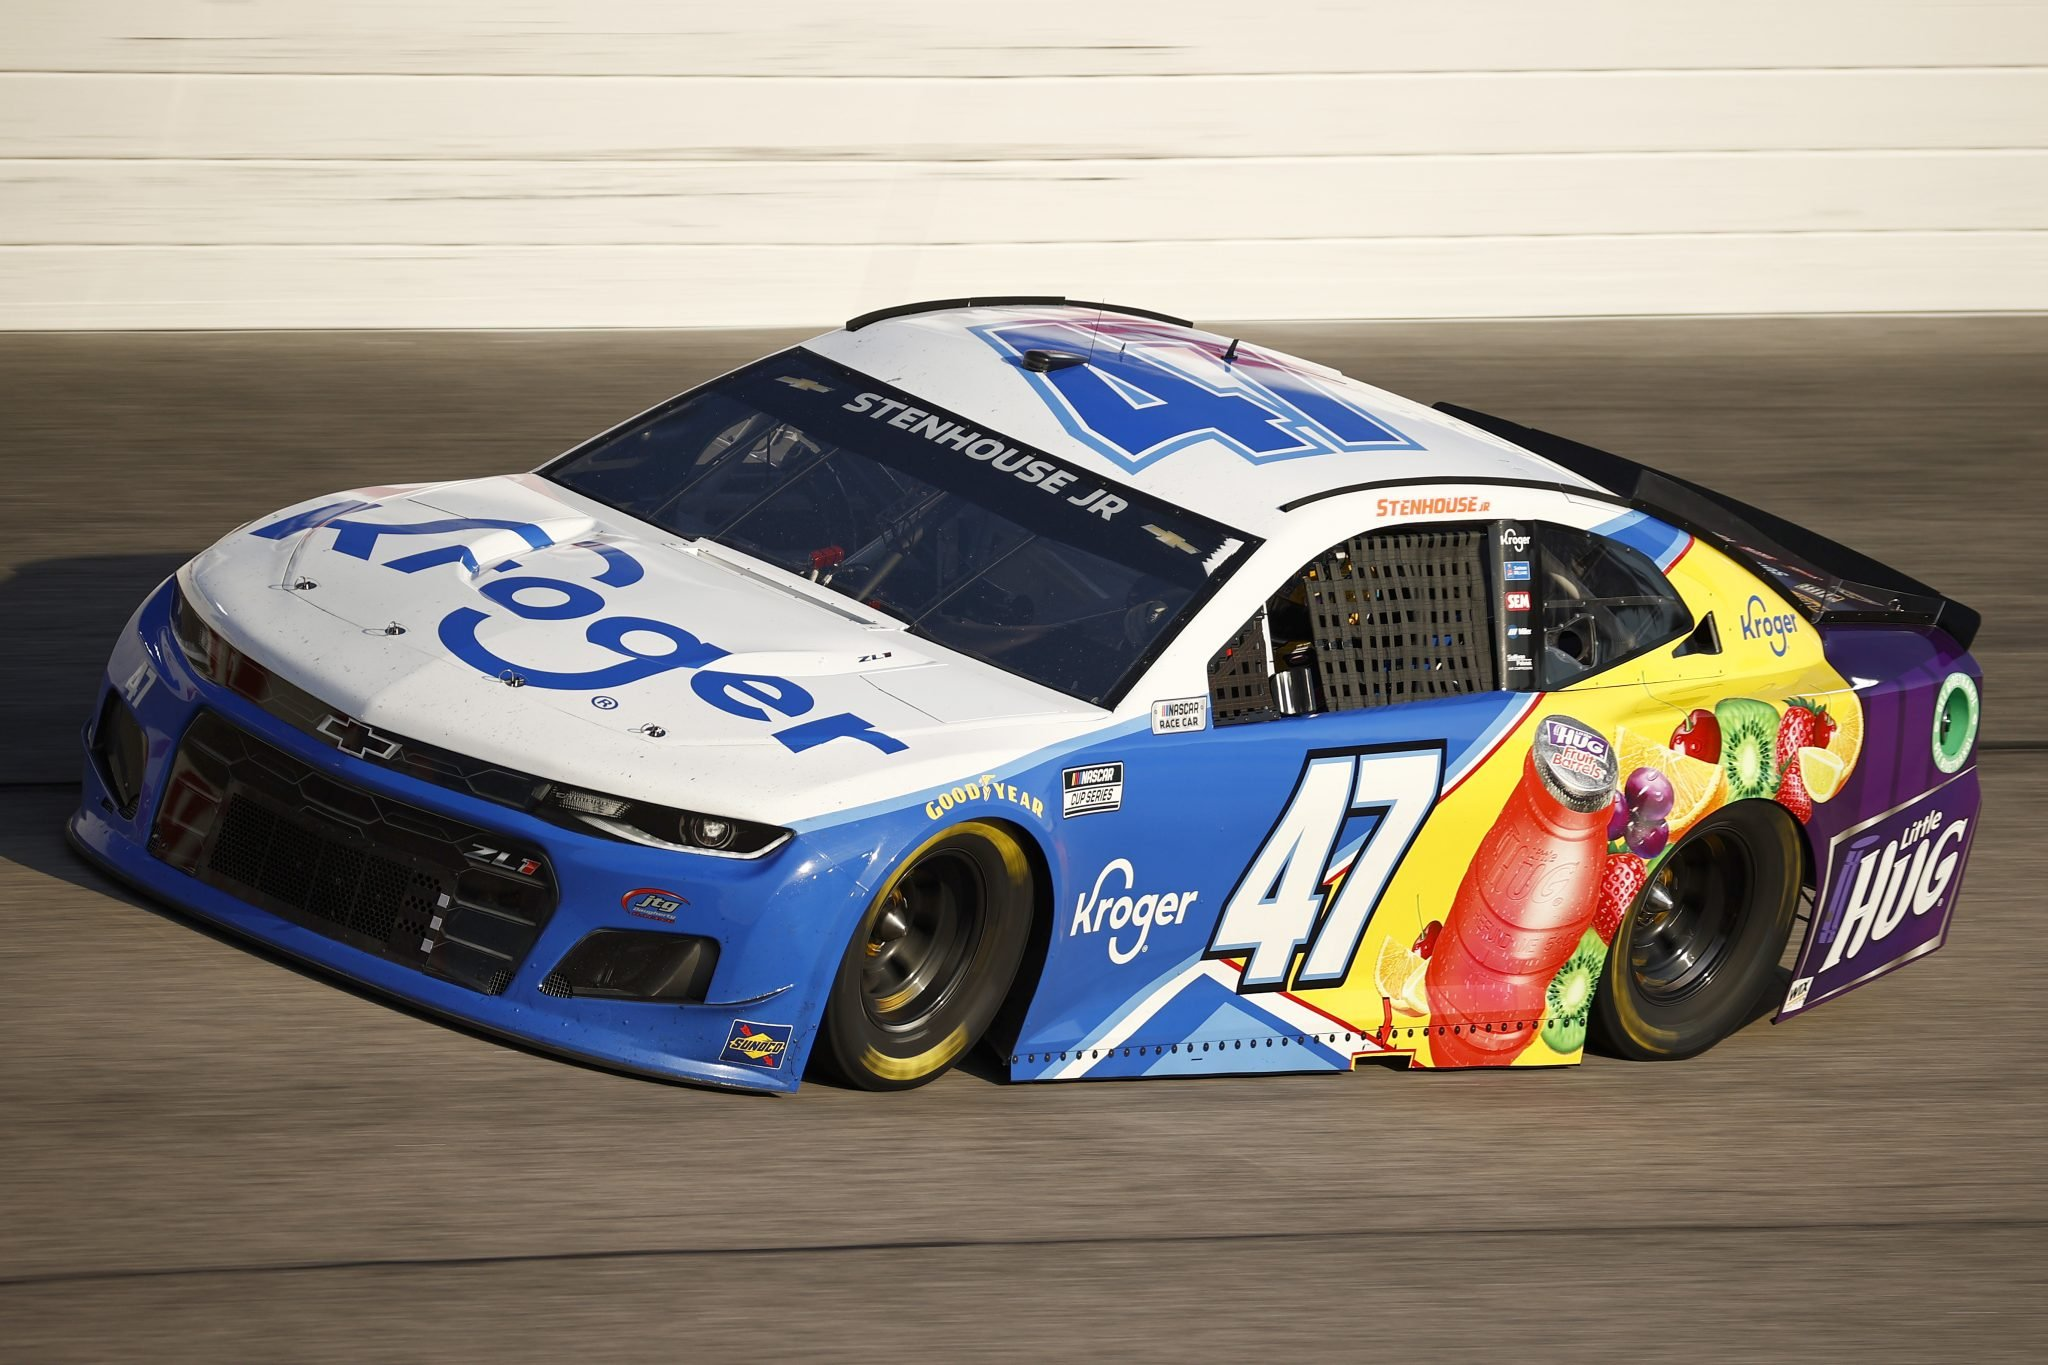 DARLINGTON, SOUTH CAROLINA - SEPTEMBER 05: Ricky Stenhouse Jr., driver of the #47 Kroger/Little Hug Chevrolet, drives during the NASCAR Cup Series Cook Out Southern 500 at Darlington Raceway on September 05, 2021 in Darlington, South Carolina. (Photo by Jared C. Tilton/Getty Images)   Getty Images